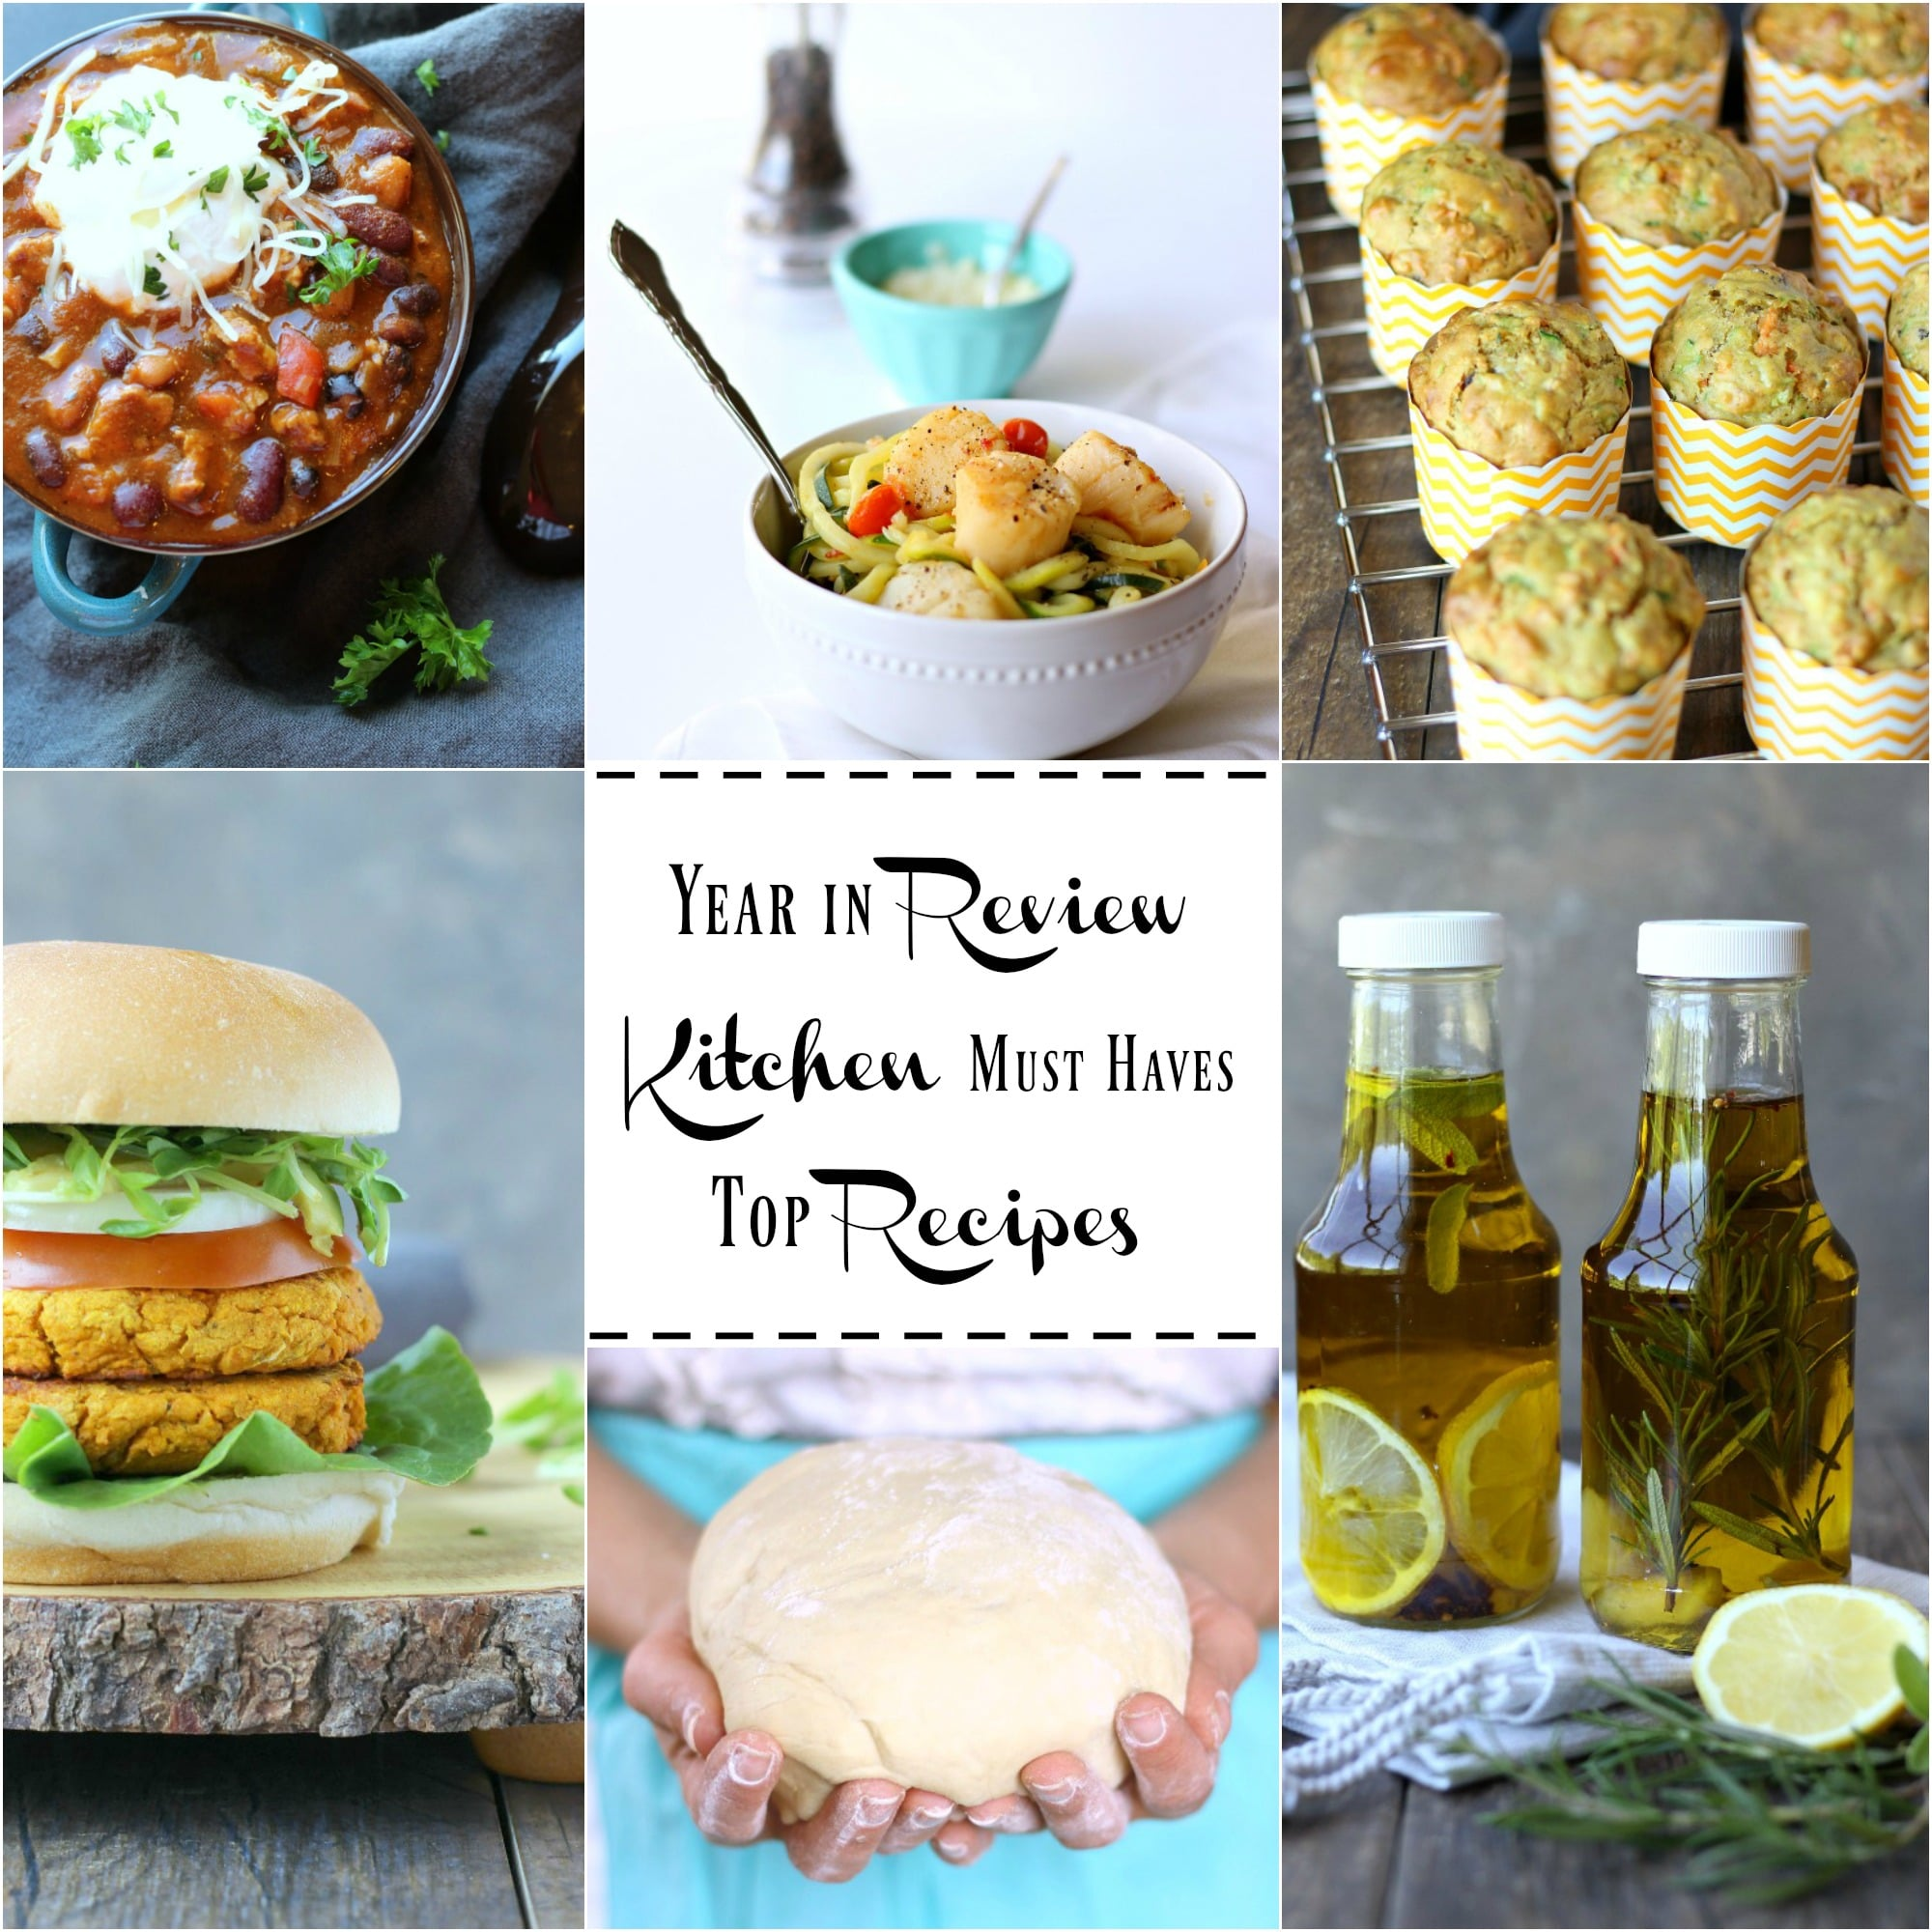 Year in Review + Top Recipes + Kitchen Must Haves | gardeninthekitchen.com